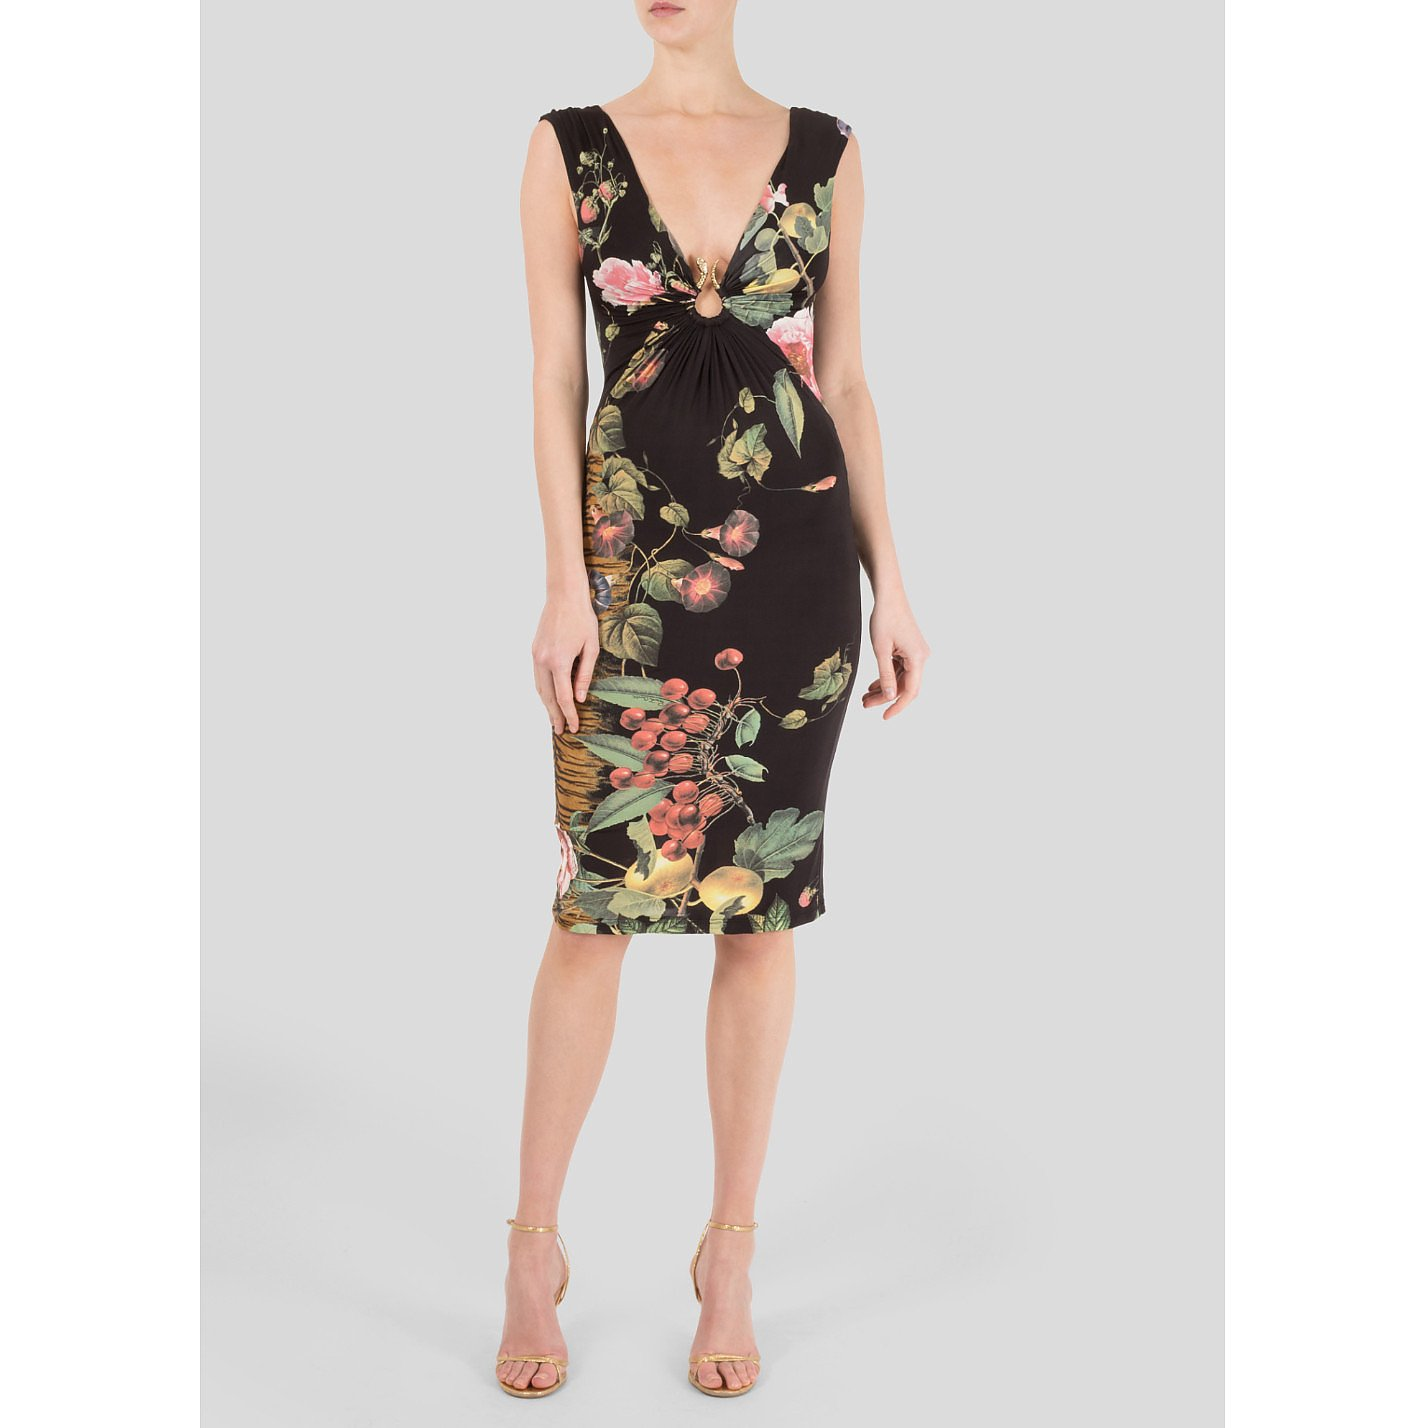 Roberto Cavalli Ruched Floral Dress